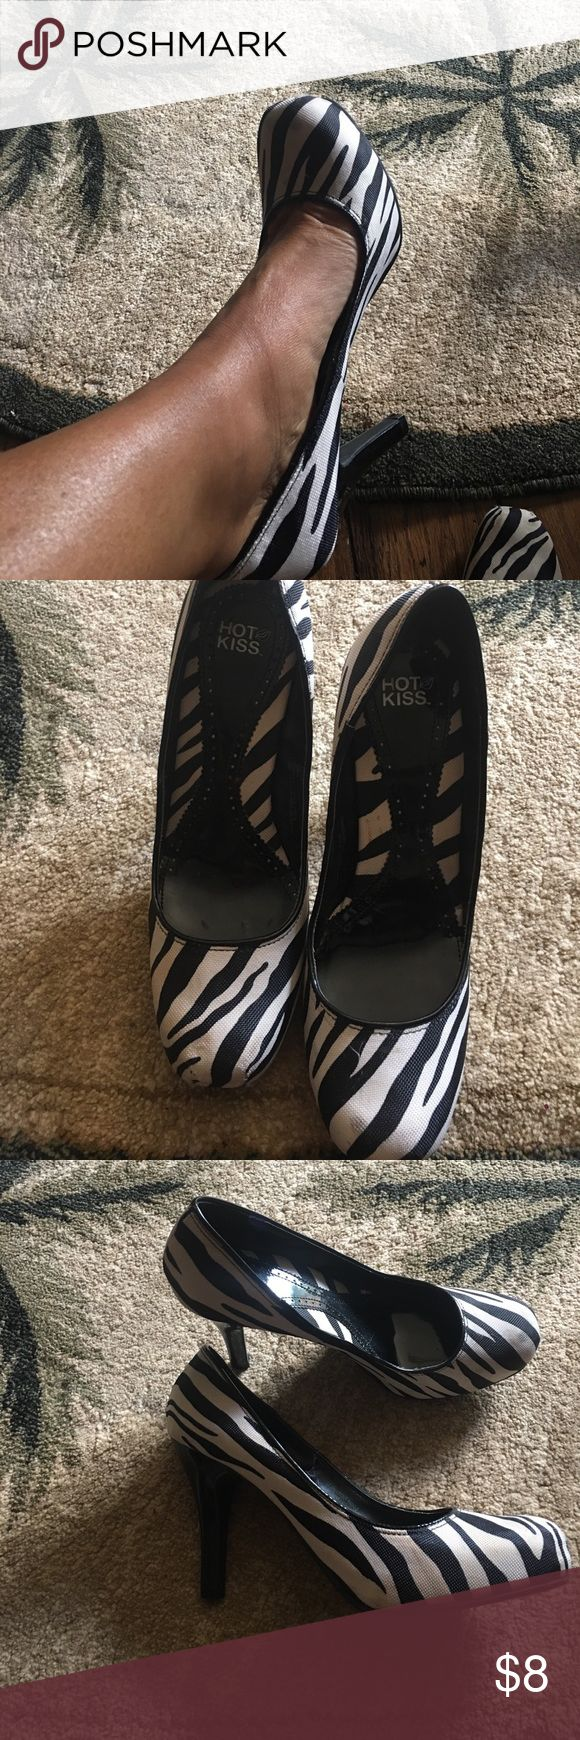 Fun zebra shoes Cute and fun with black dress or pants. Still plenty of wear left in these cute shoes. A couple of light stains.  You could try to clean up but not noticeable Hot Kiss Shoes Heels